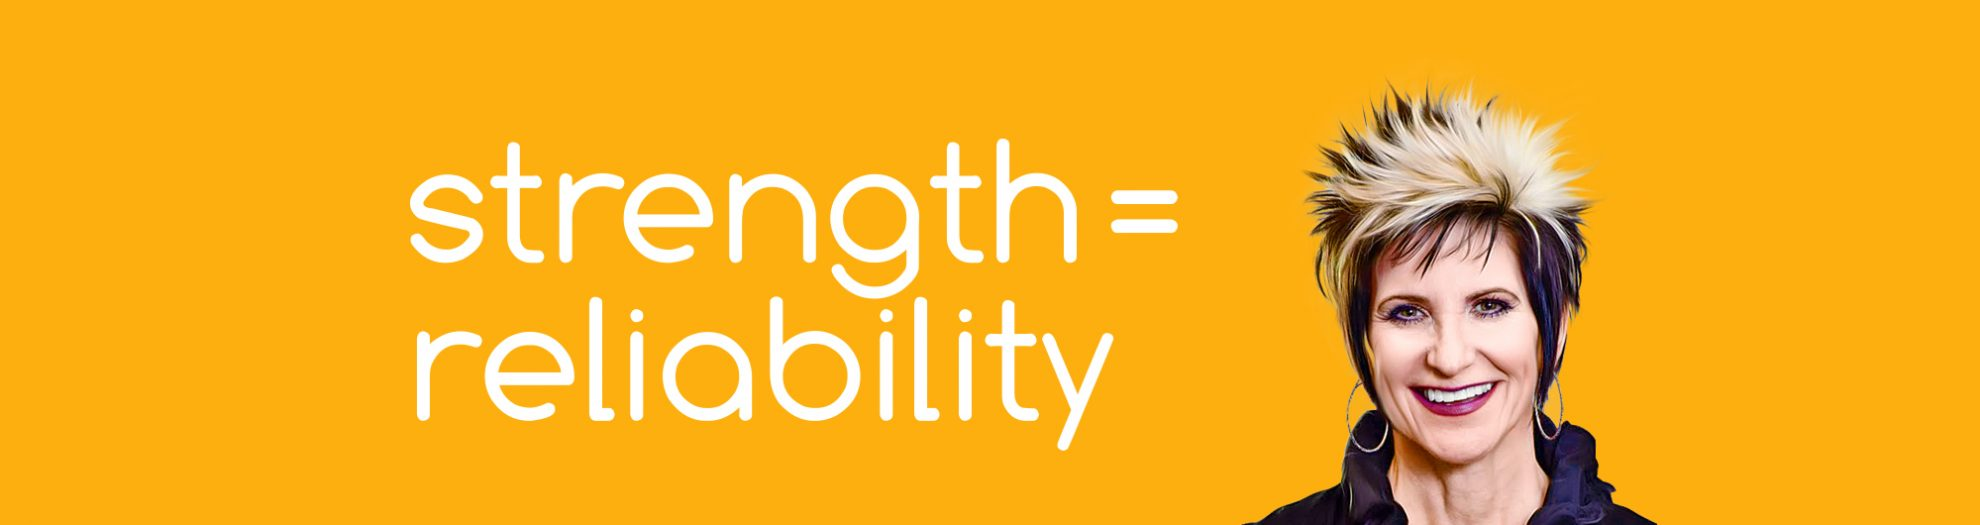 Strength Equals Reliability